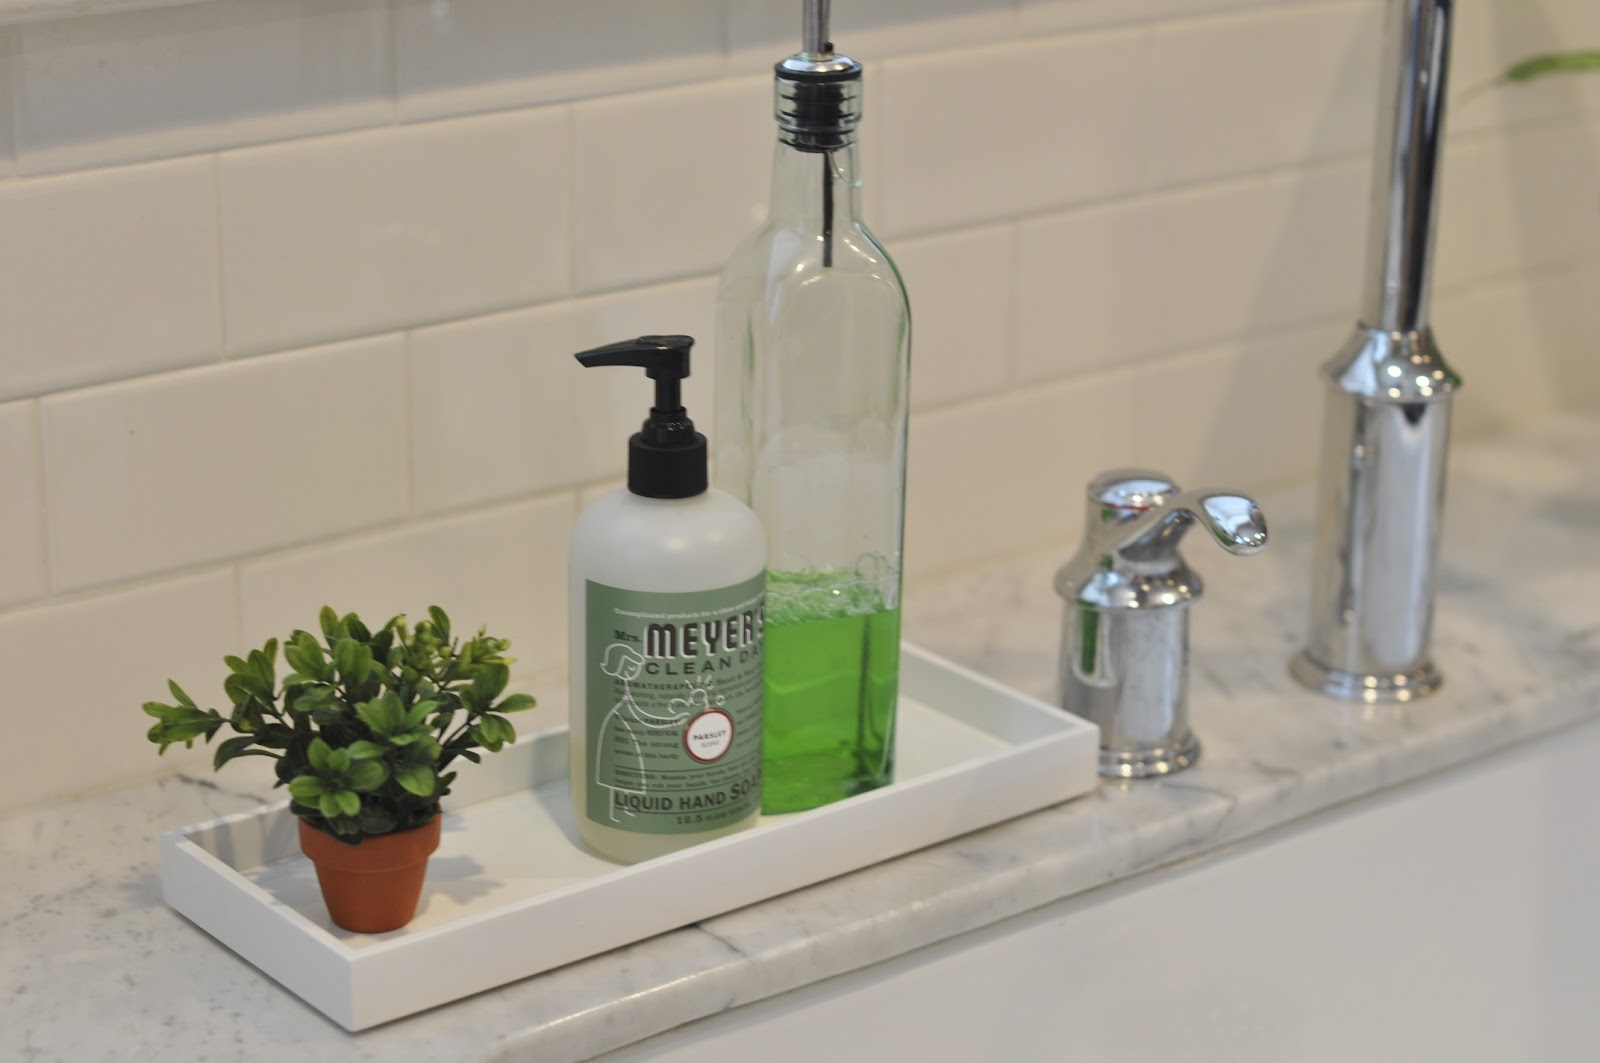 kitchen soap knife holder pretty trays for the honey we re home dish is decanted in a glass bottle from goods probably meant olive oil but it looks so much prettier than my plastic of dawn